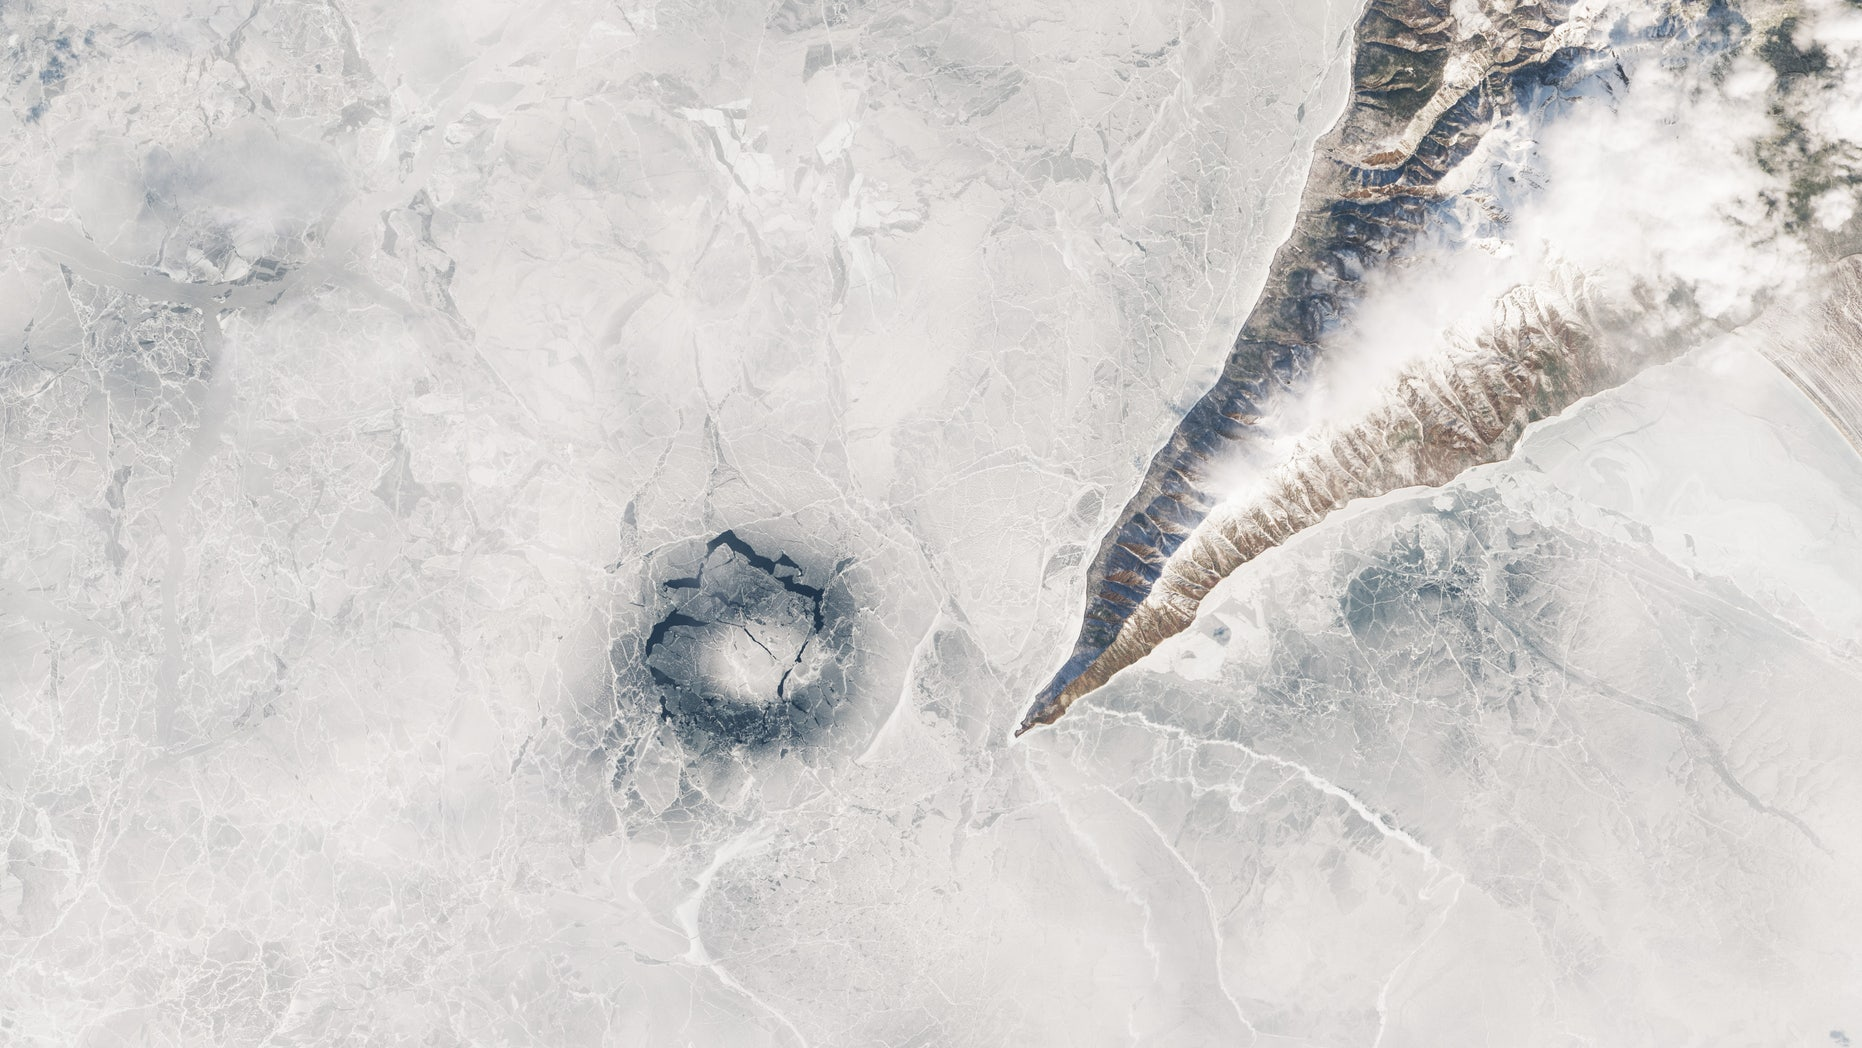 Westlake Legal Group NASALakeBaikal What's causing mysterious 'ice rings' to form in the world's deepest lake? LiveScience Laura Geggel fox-news/science fnc/science fnc d9953de3-5019-5c3f-8656-2eb32bba28fd article